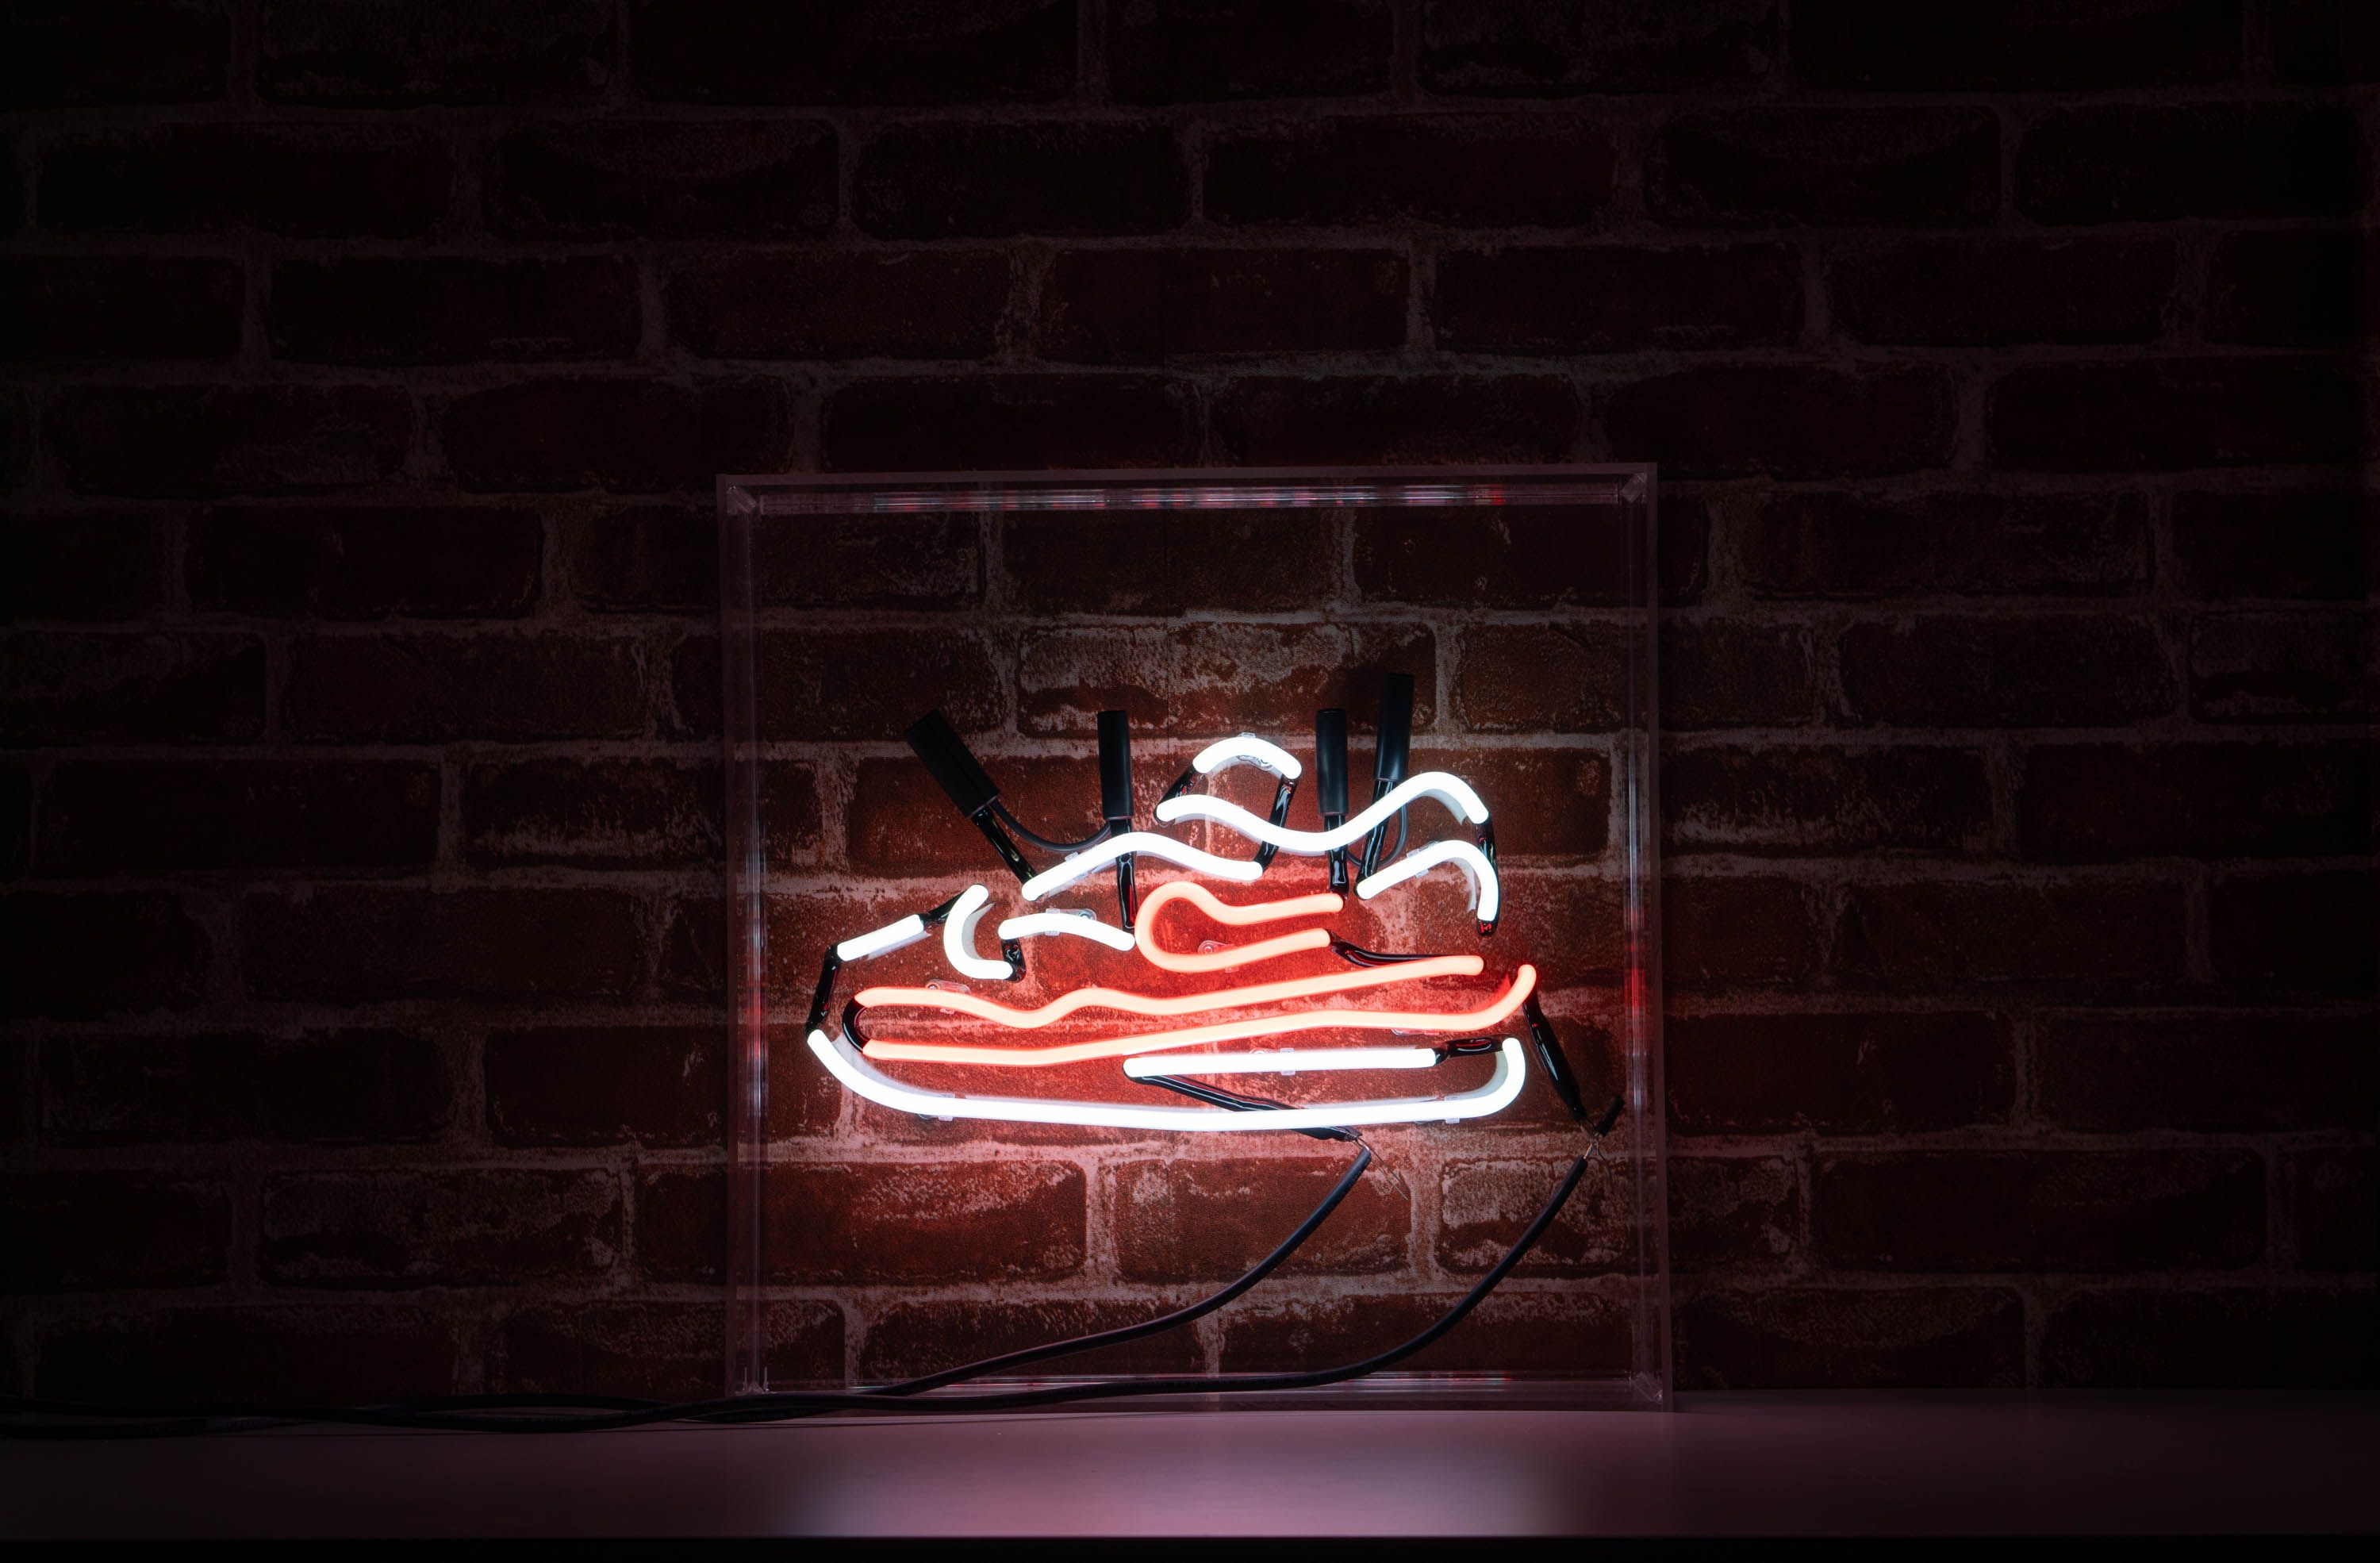 Nike Sneakers In A Neon Neon Signs Neon Nike Signs